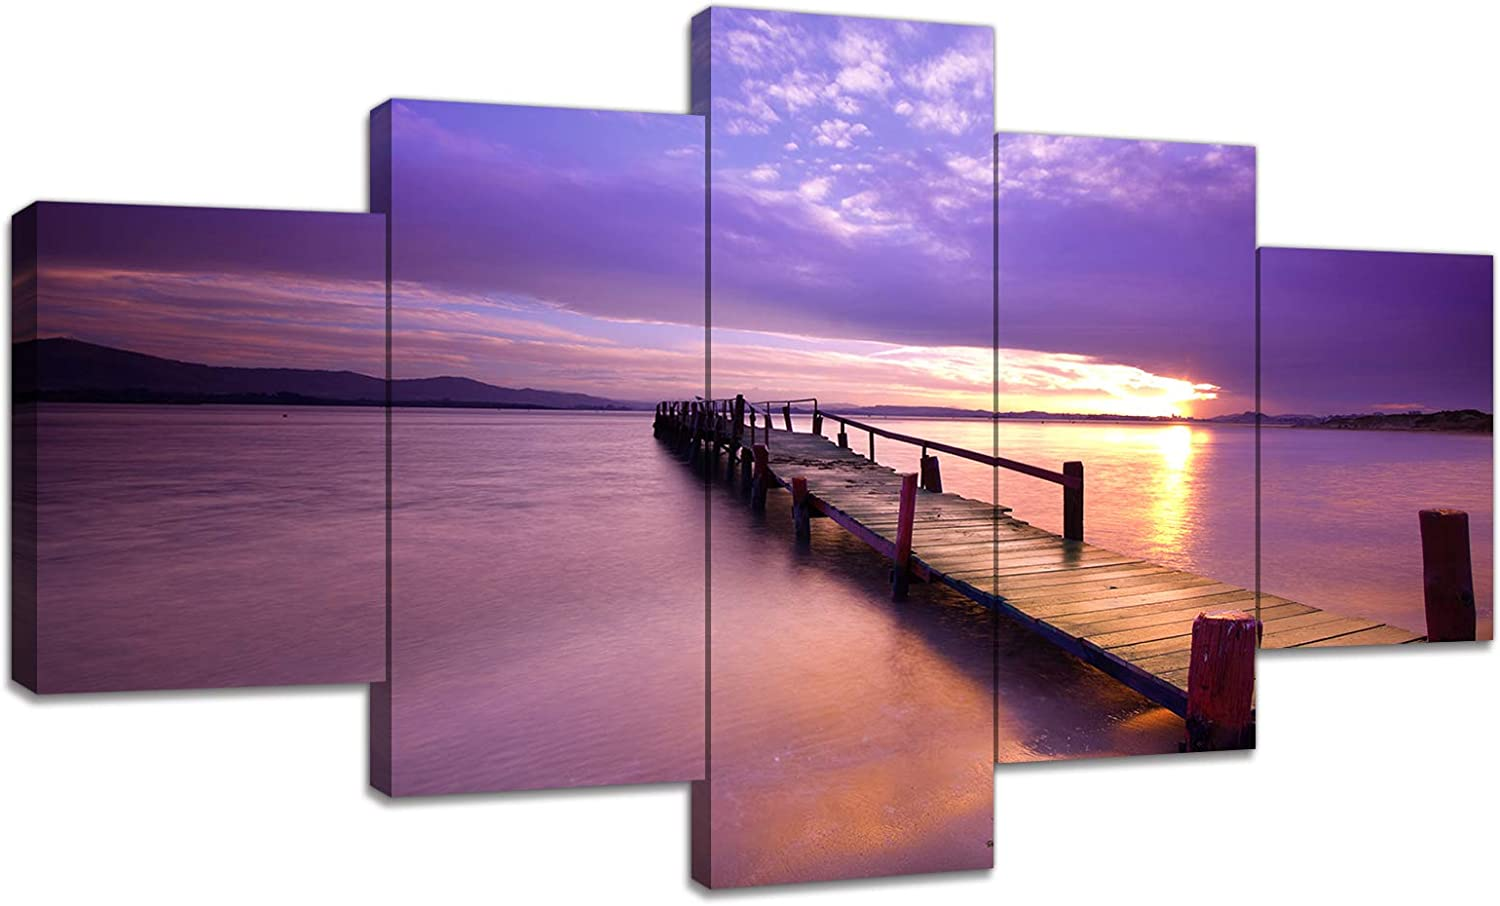 Amazon Com Urttiiyy Sea Bridge Canvas Wall Art Pier Pictures Boardwalk Under Sunset With Purple Sky Painting Print On Canvas 5 Panels Posters For Living Room Bedroom Framed Ready To Hang Posters